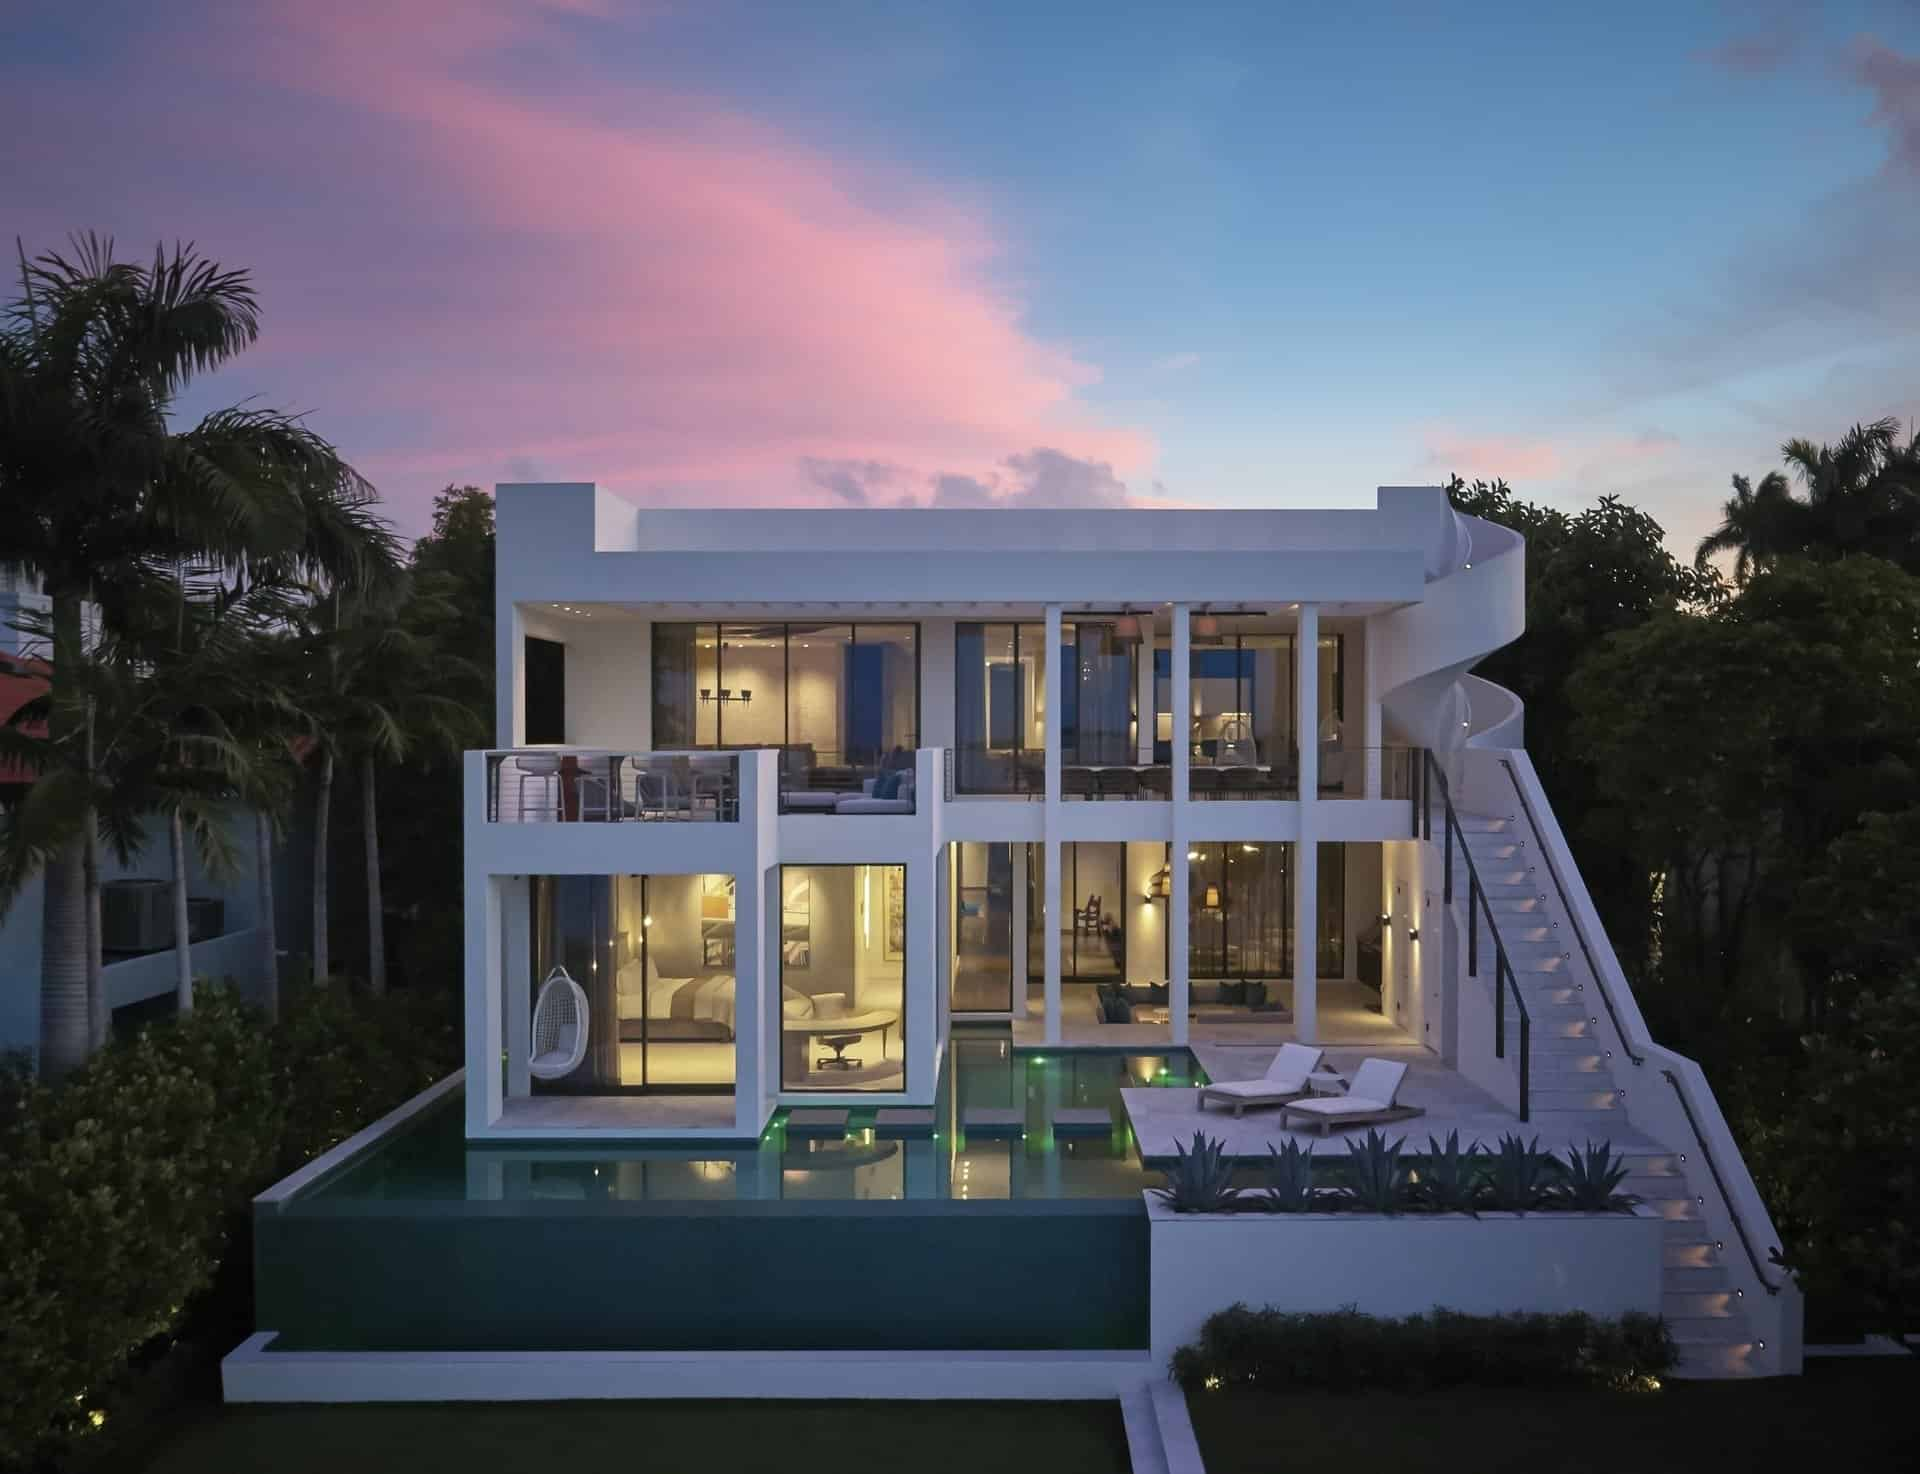 Project: New Build of Modern Miami Home